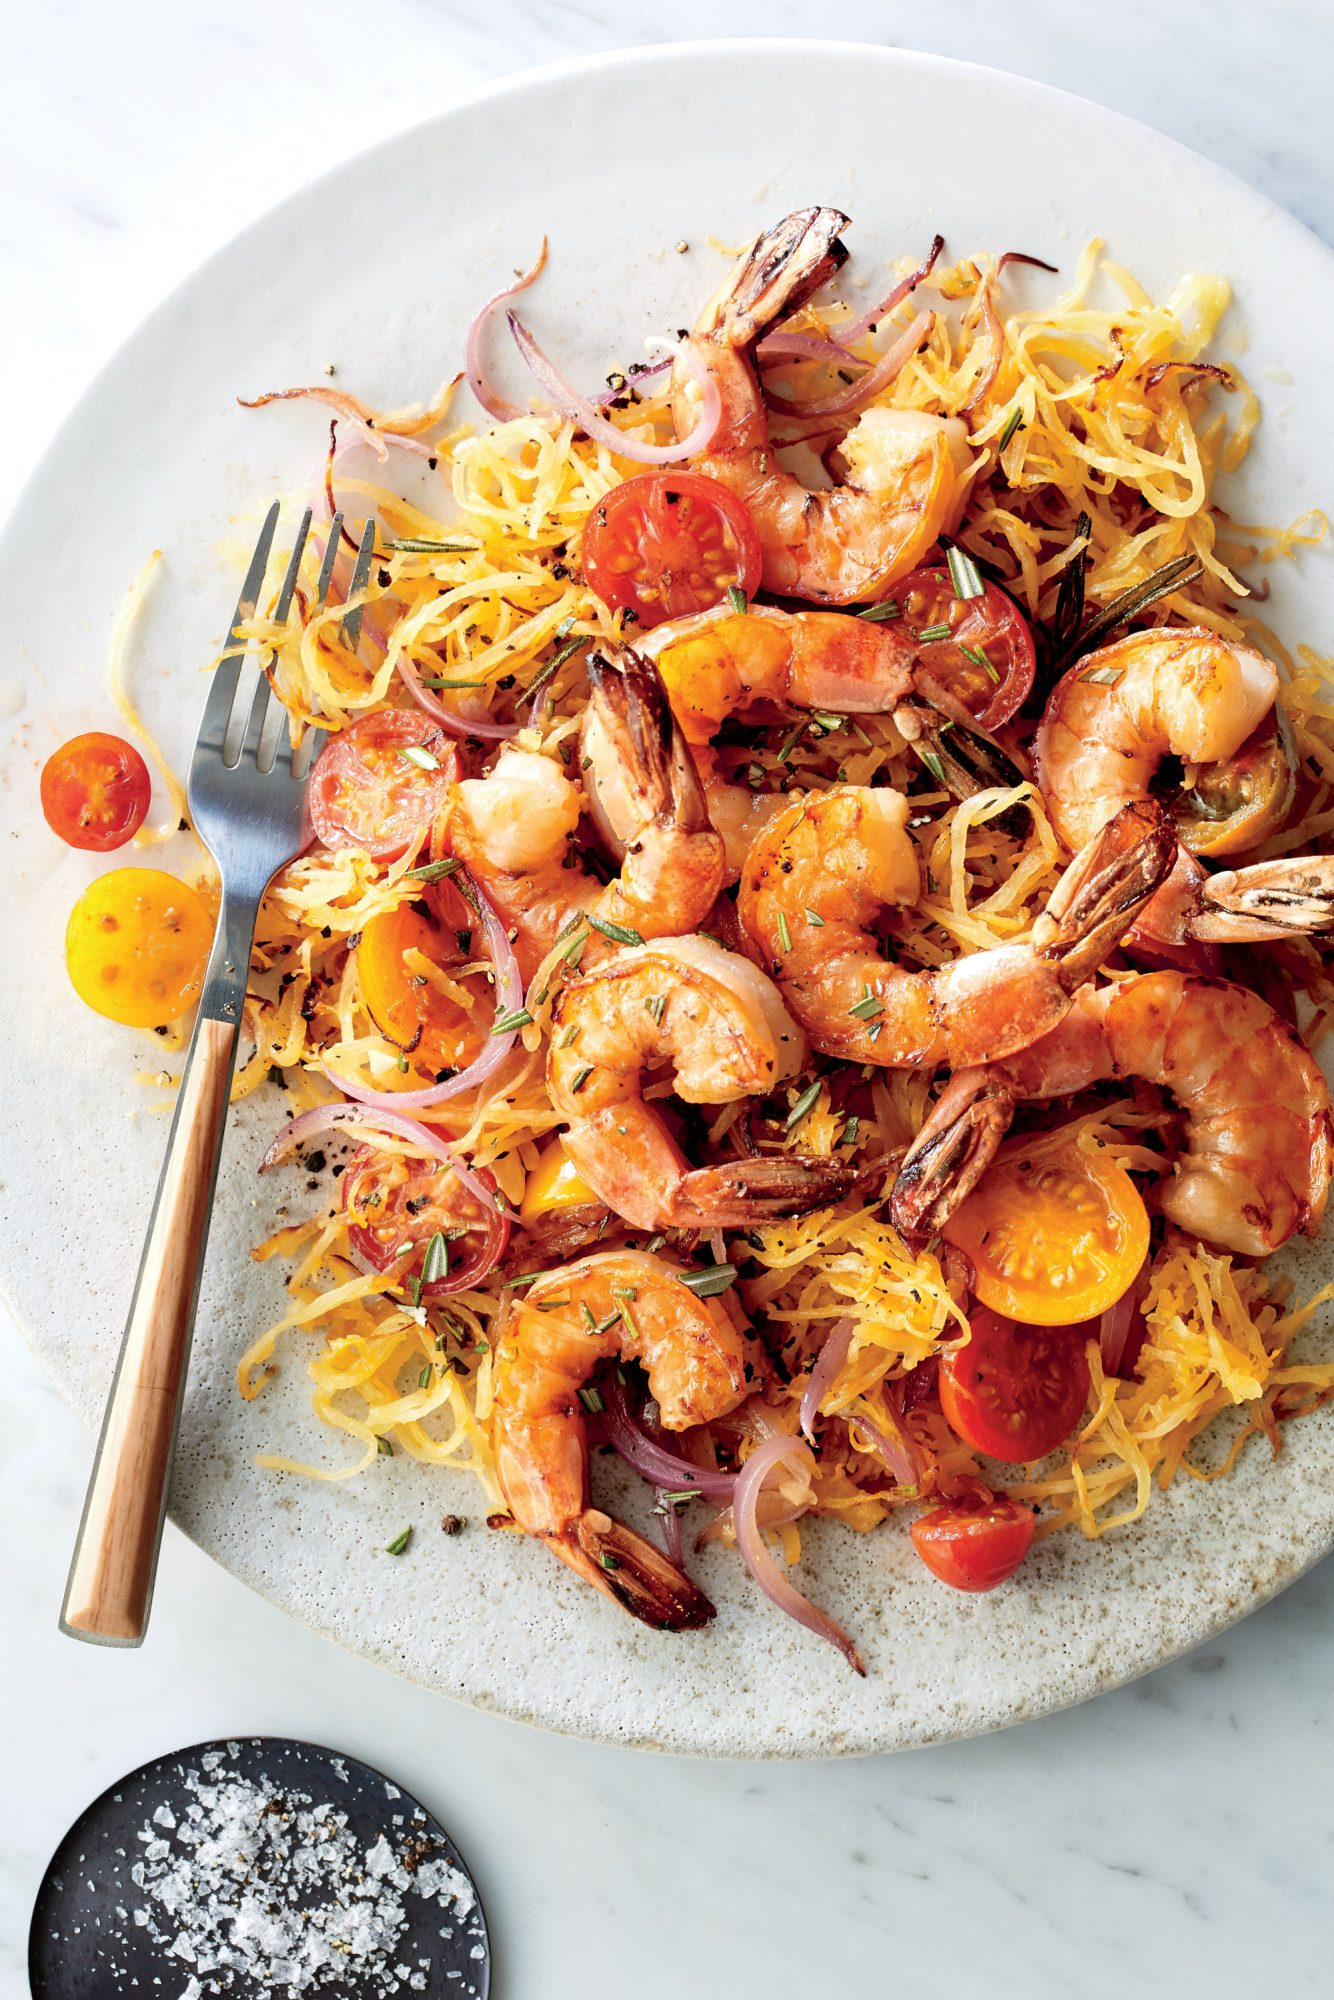 Pan Seared Shrimp with Rosemary Spaghetti Squash image